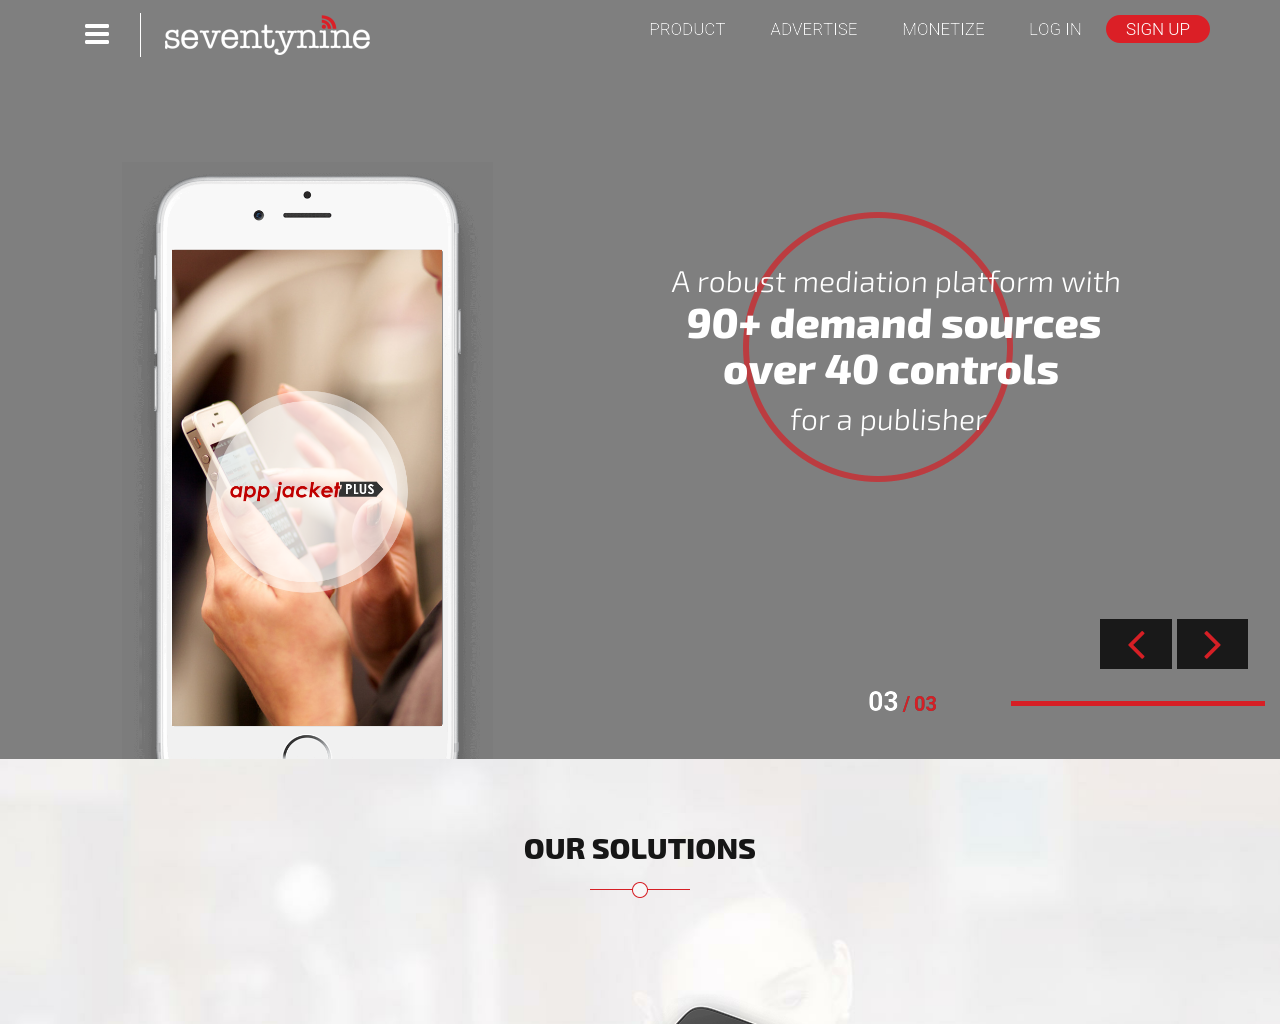 Seventynine.mobi-Advertising-Reviews-Pricing